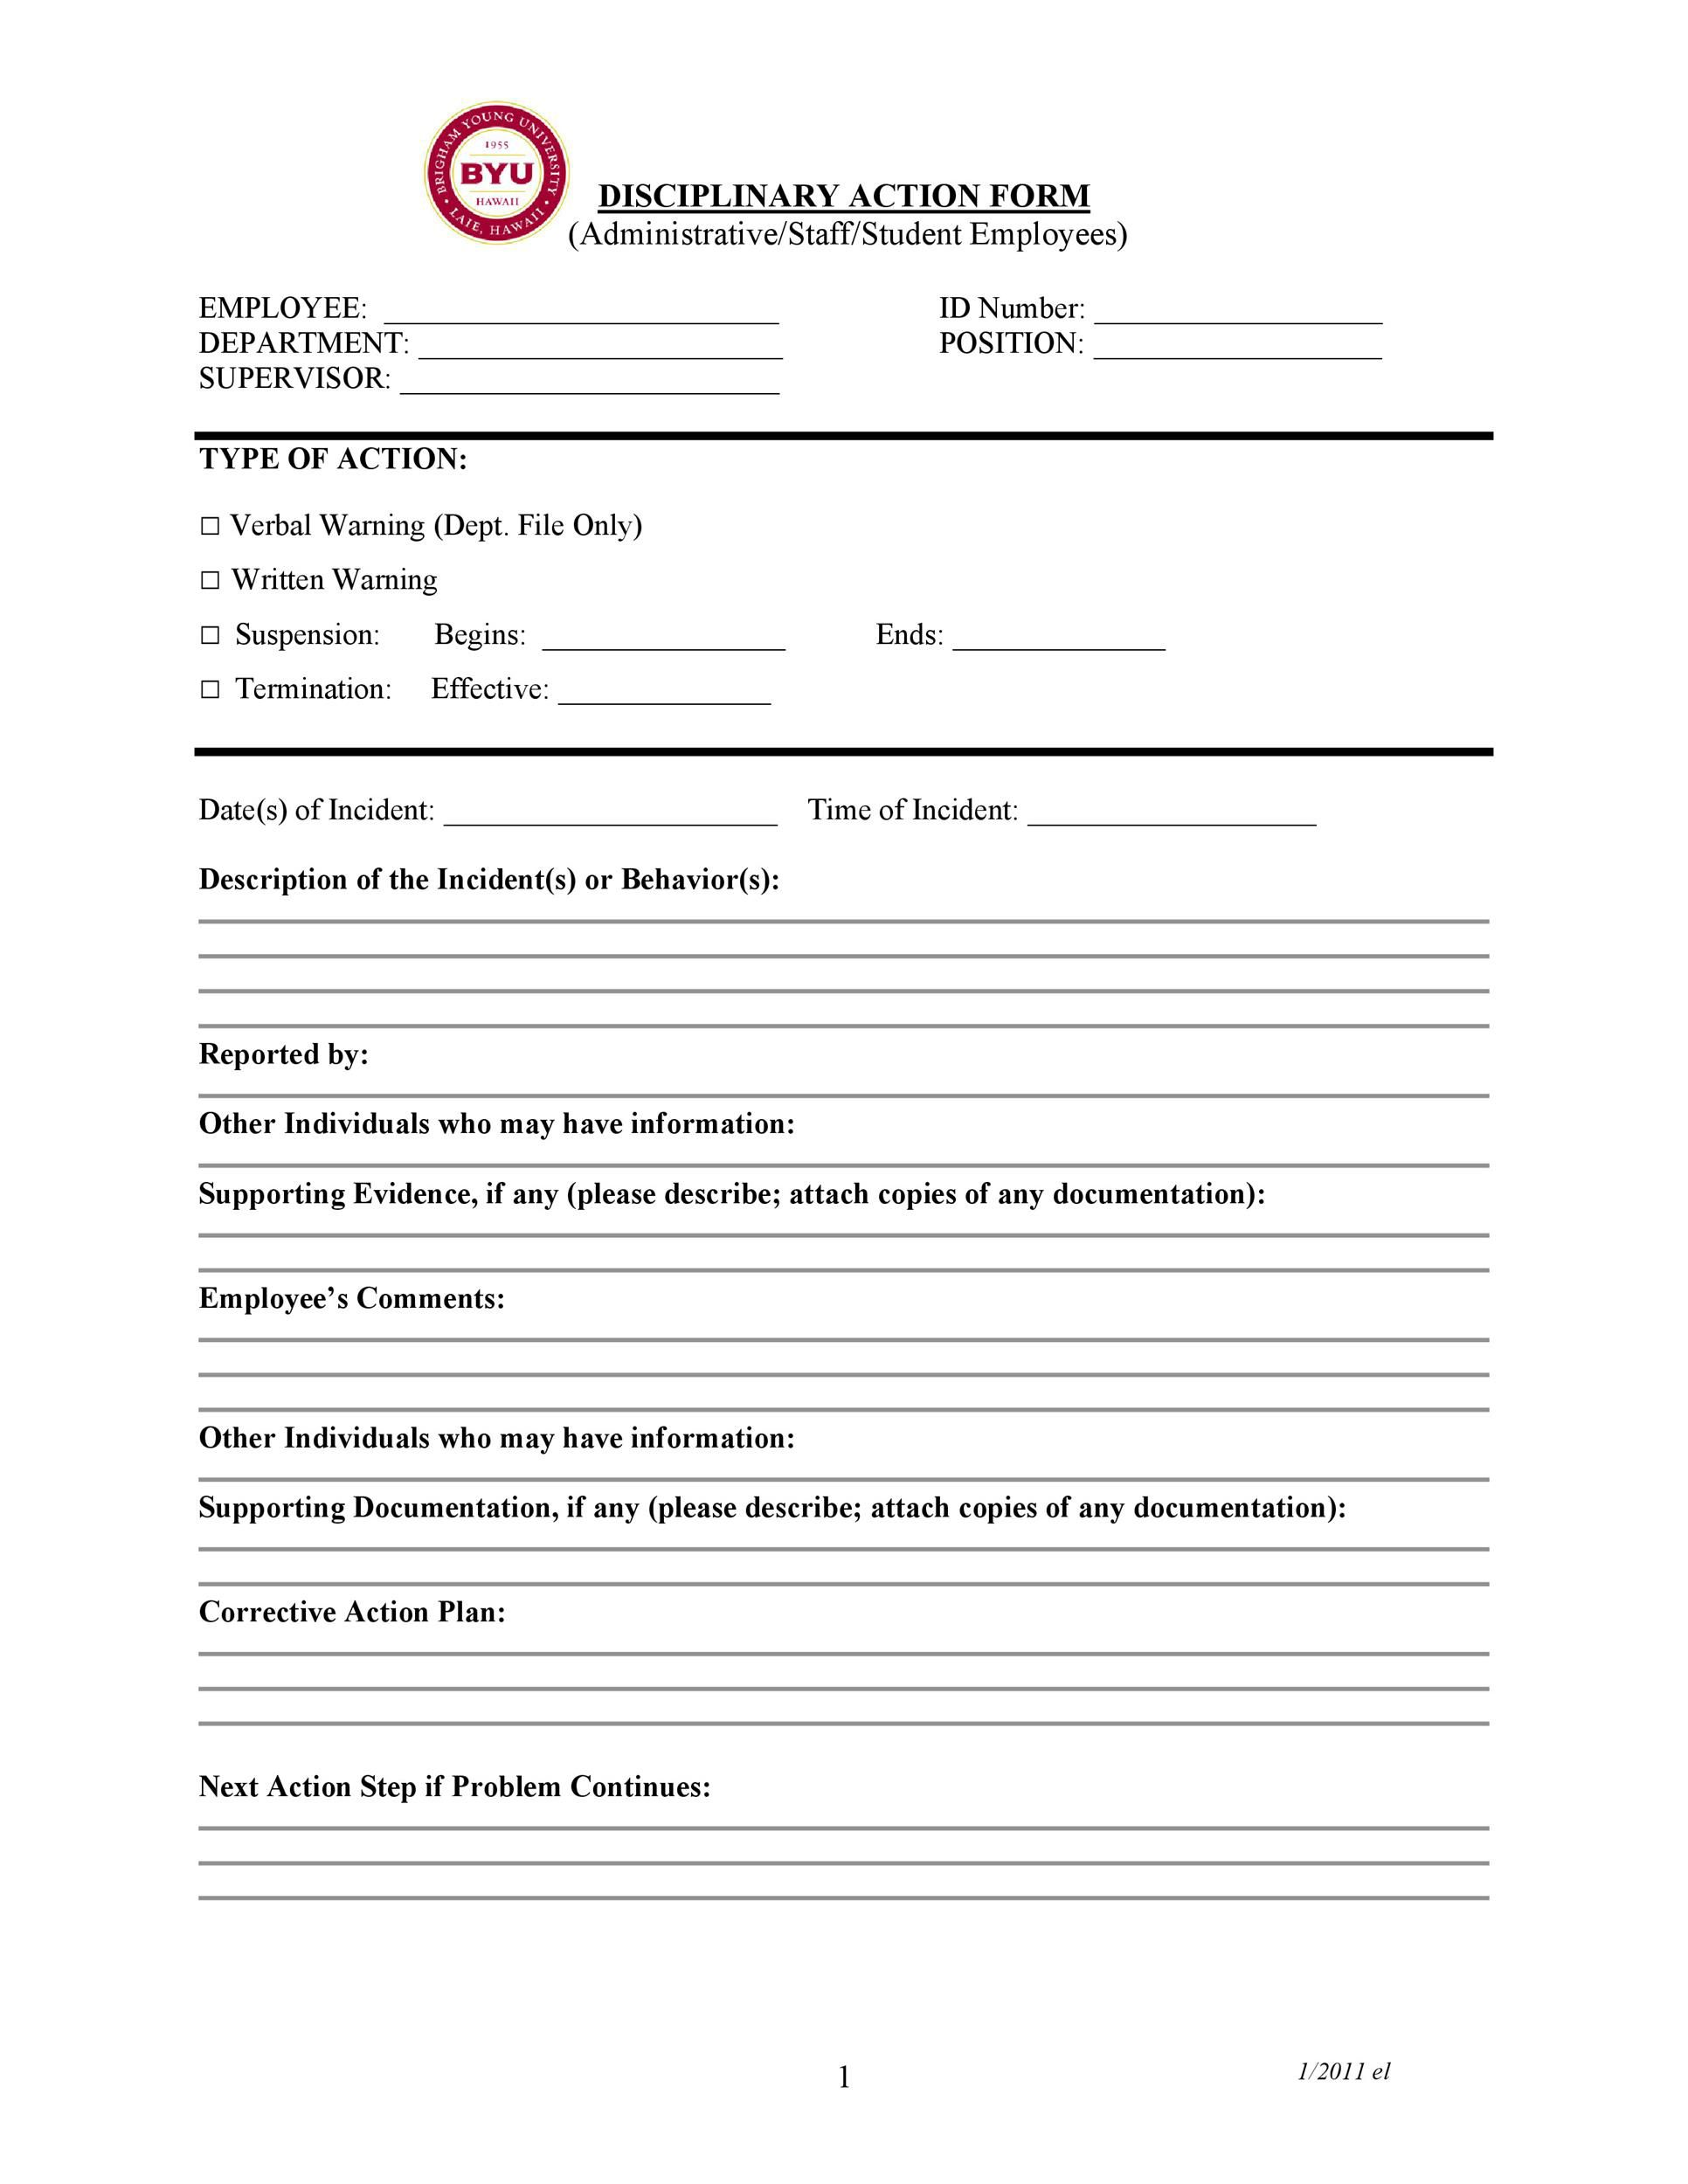 001 Astounding Employee Discipline Form Template Idea  Free Disciplinary Letter ActionFull